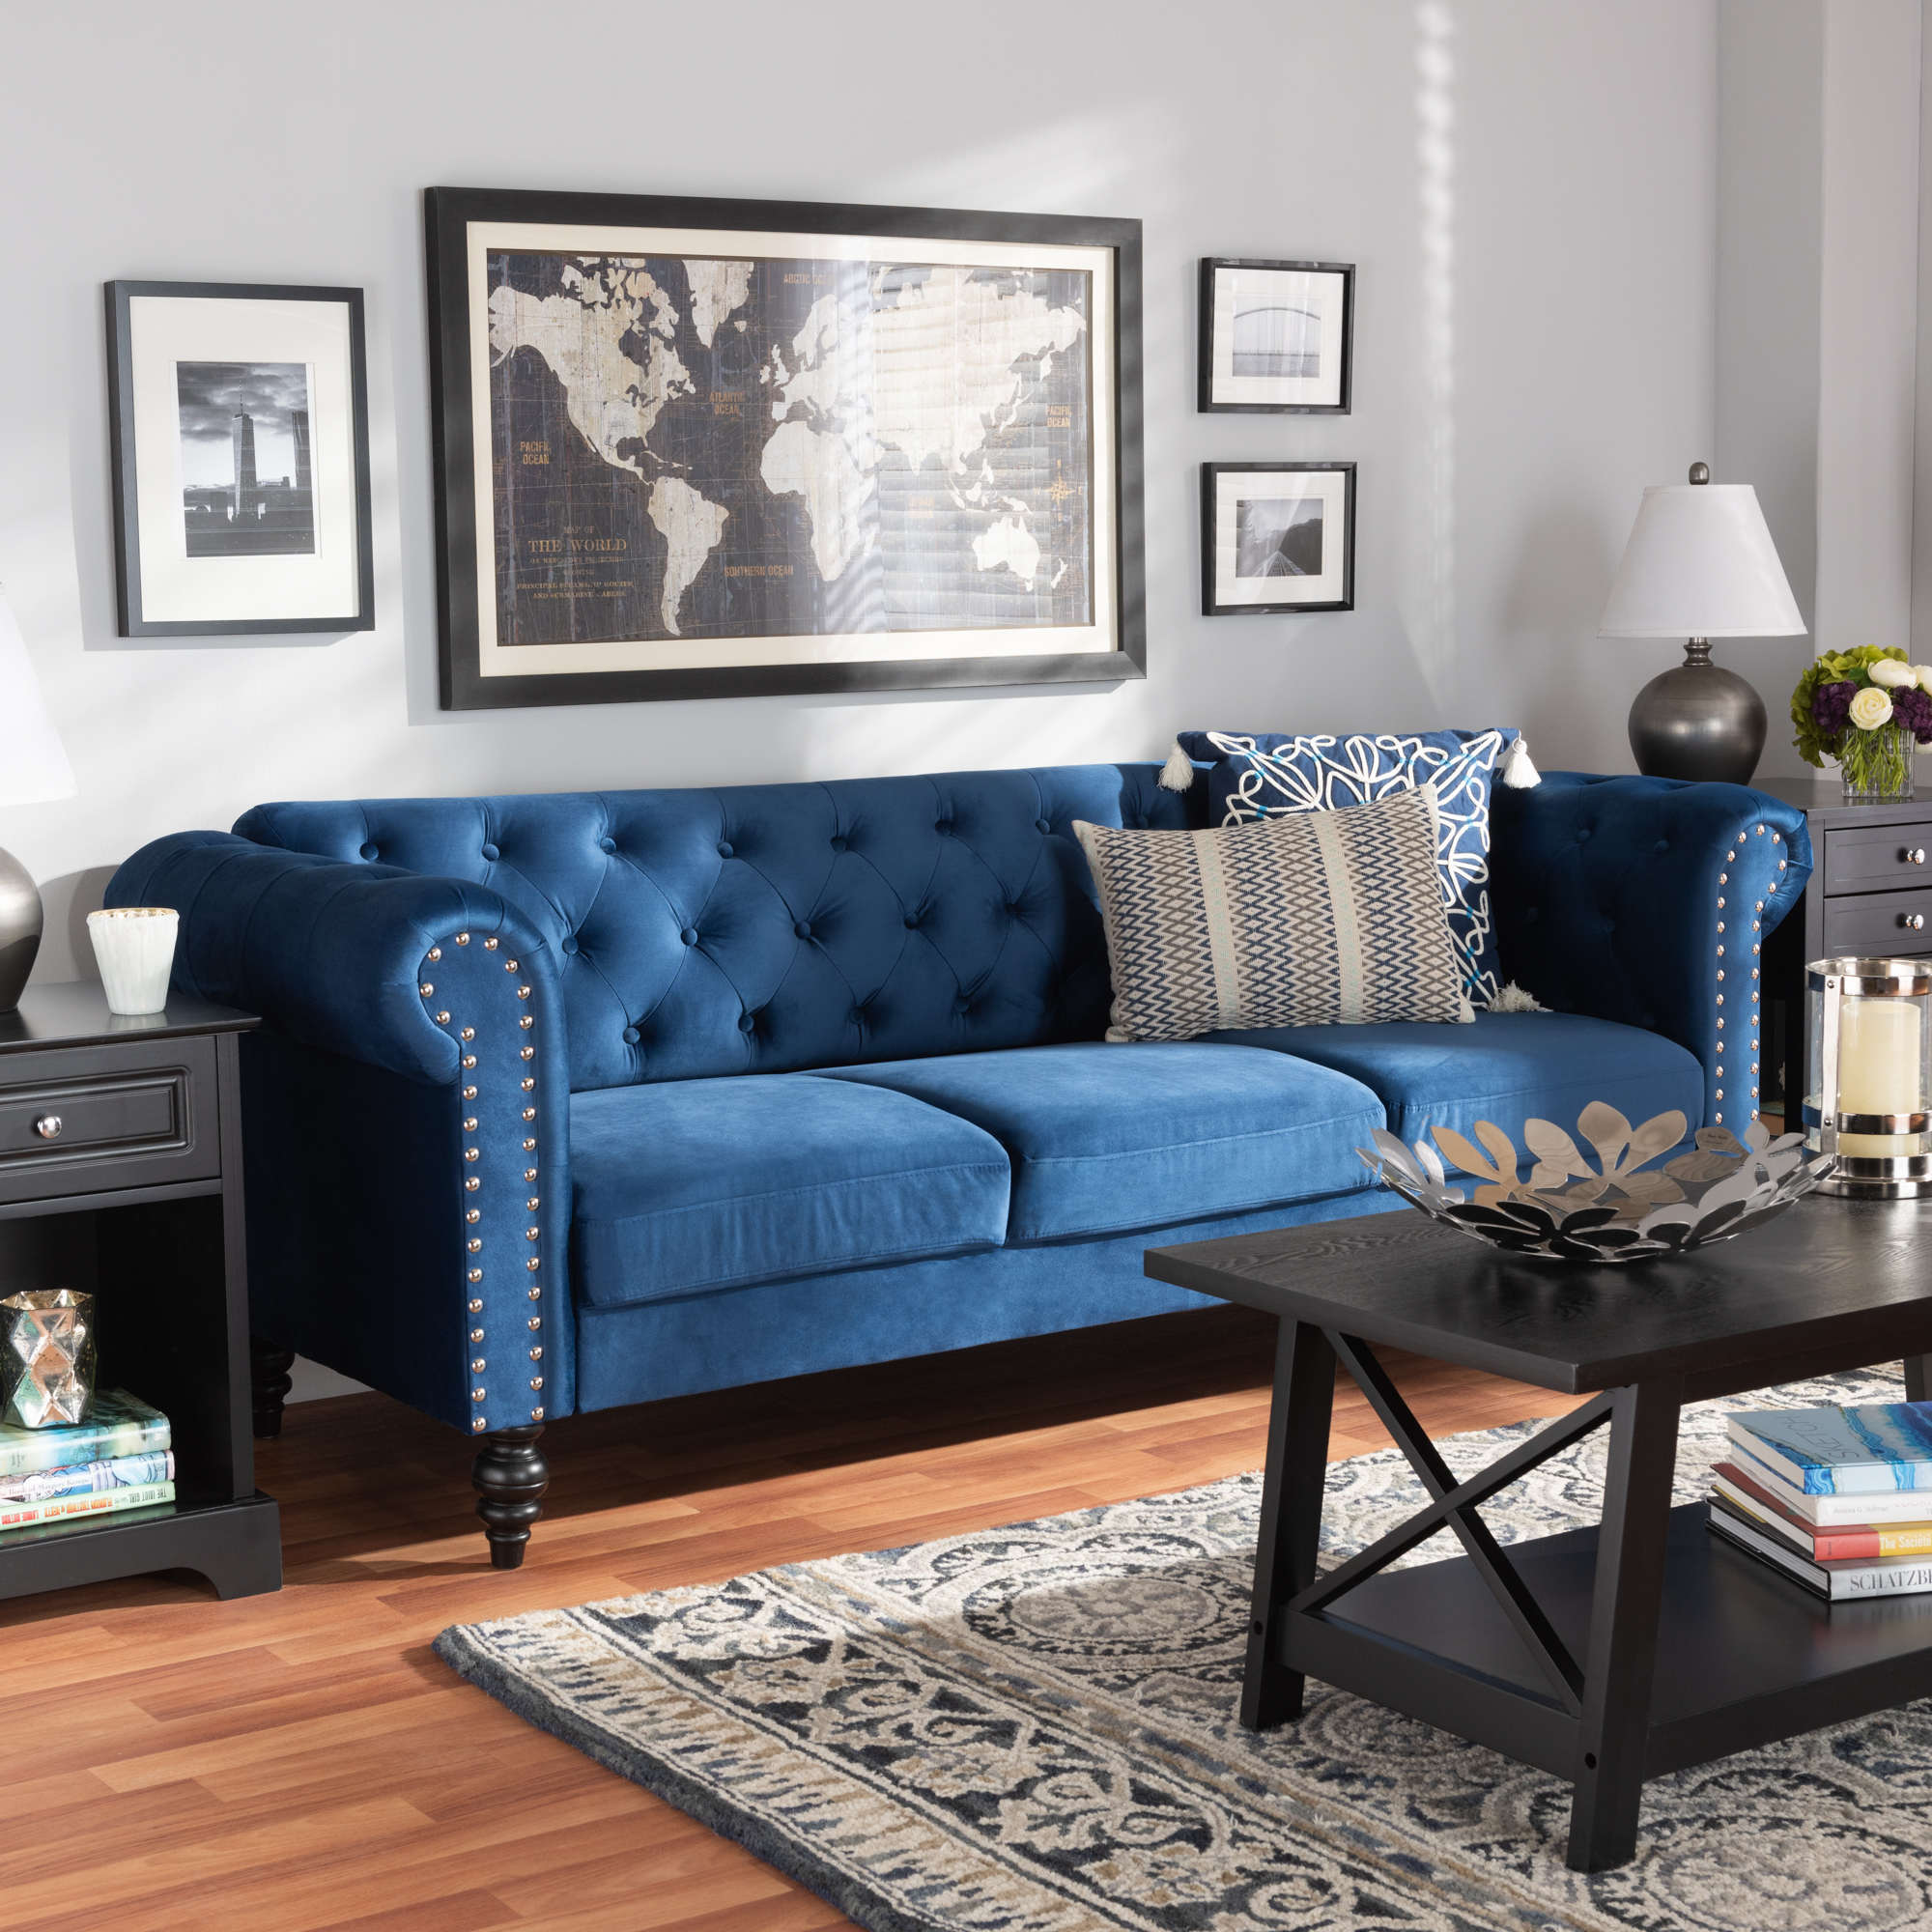 Baxton Studio Emma Traditional And Transitional Navy Blue Velvet Fabric Upholstered And Button Tufted Chesterfield Sofa Walmart Com Walmart Com